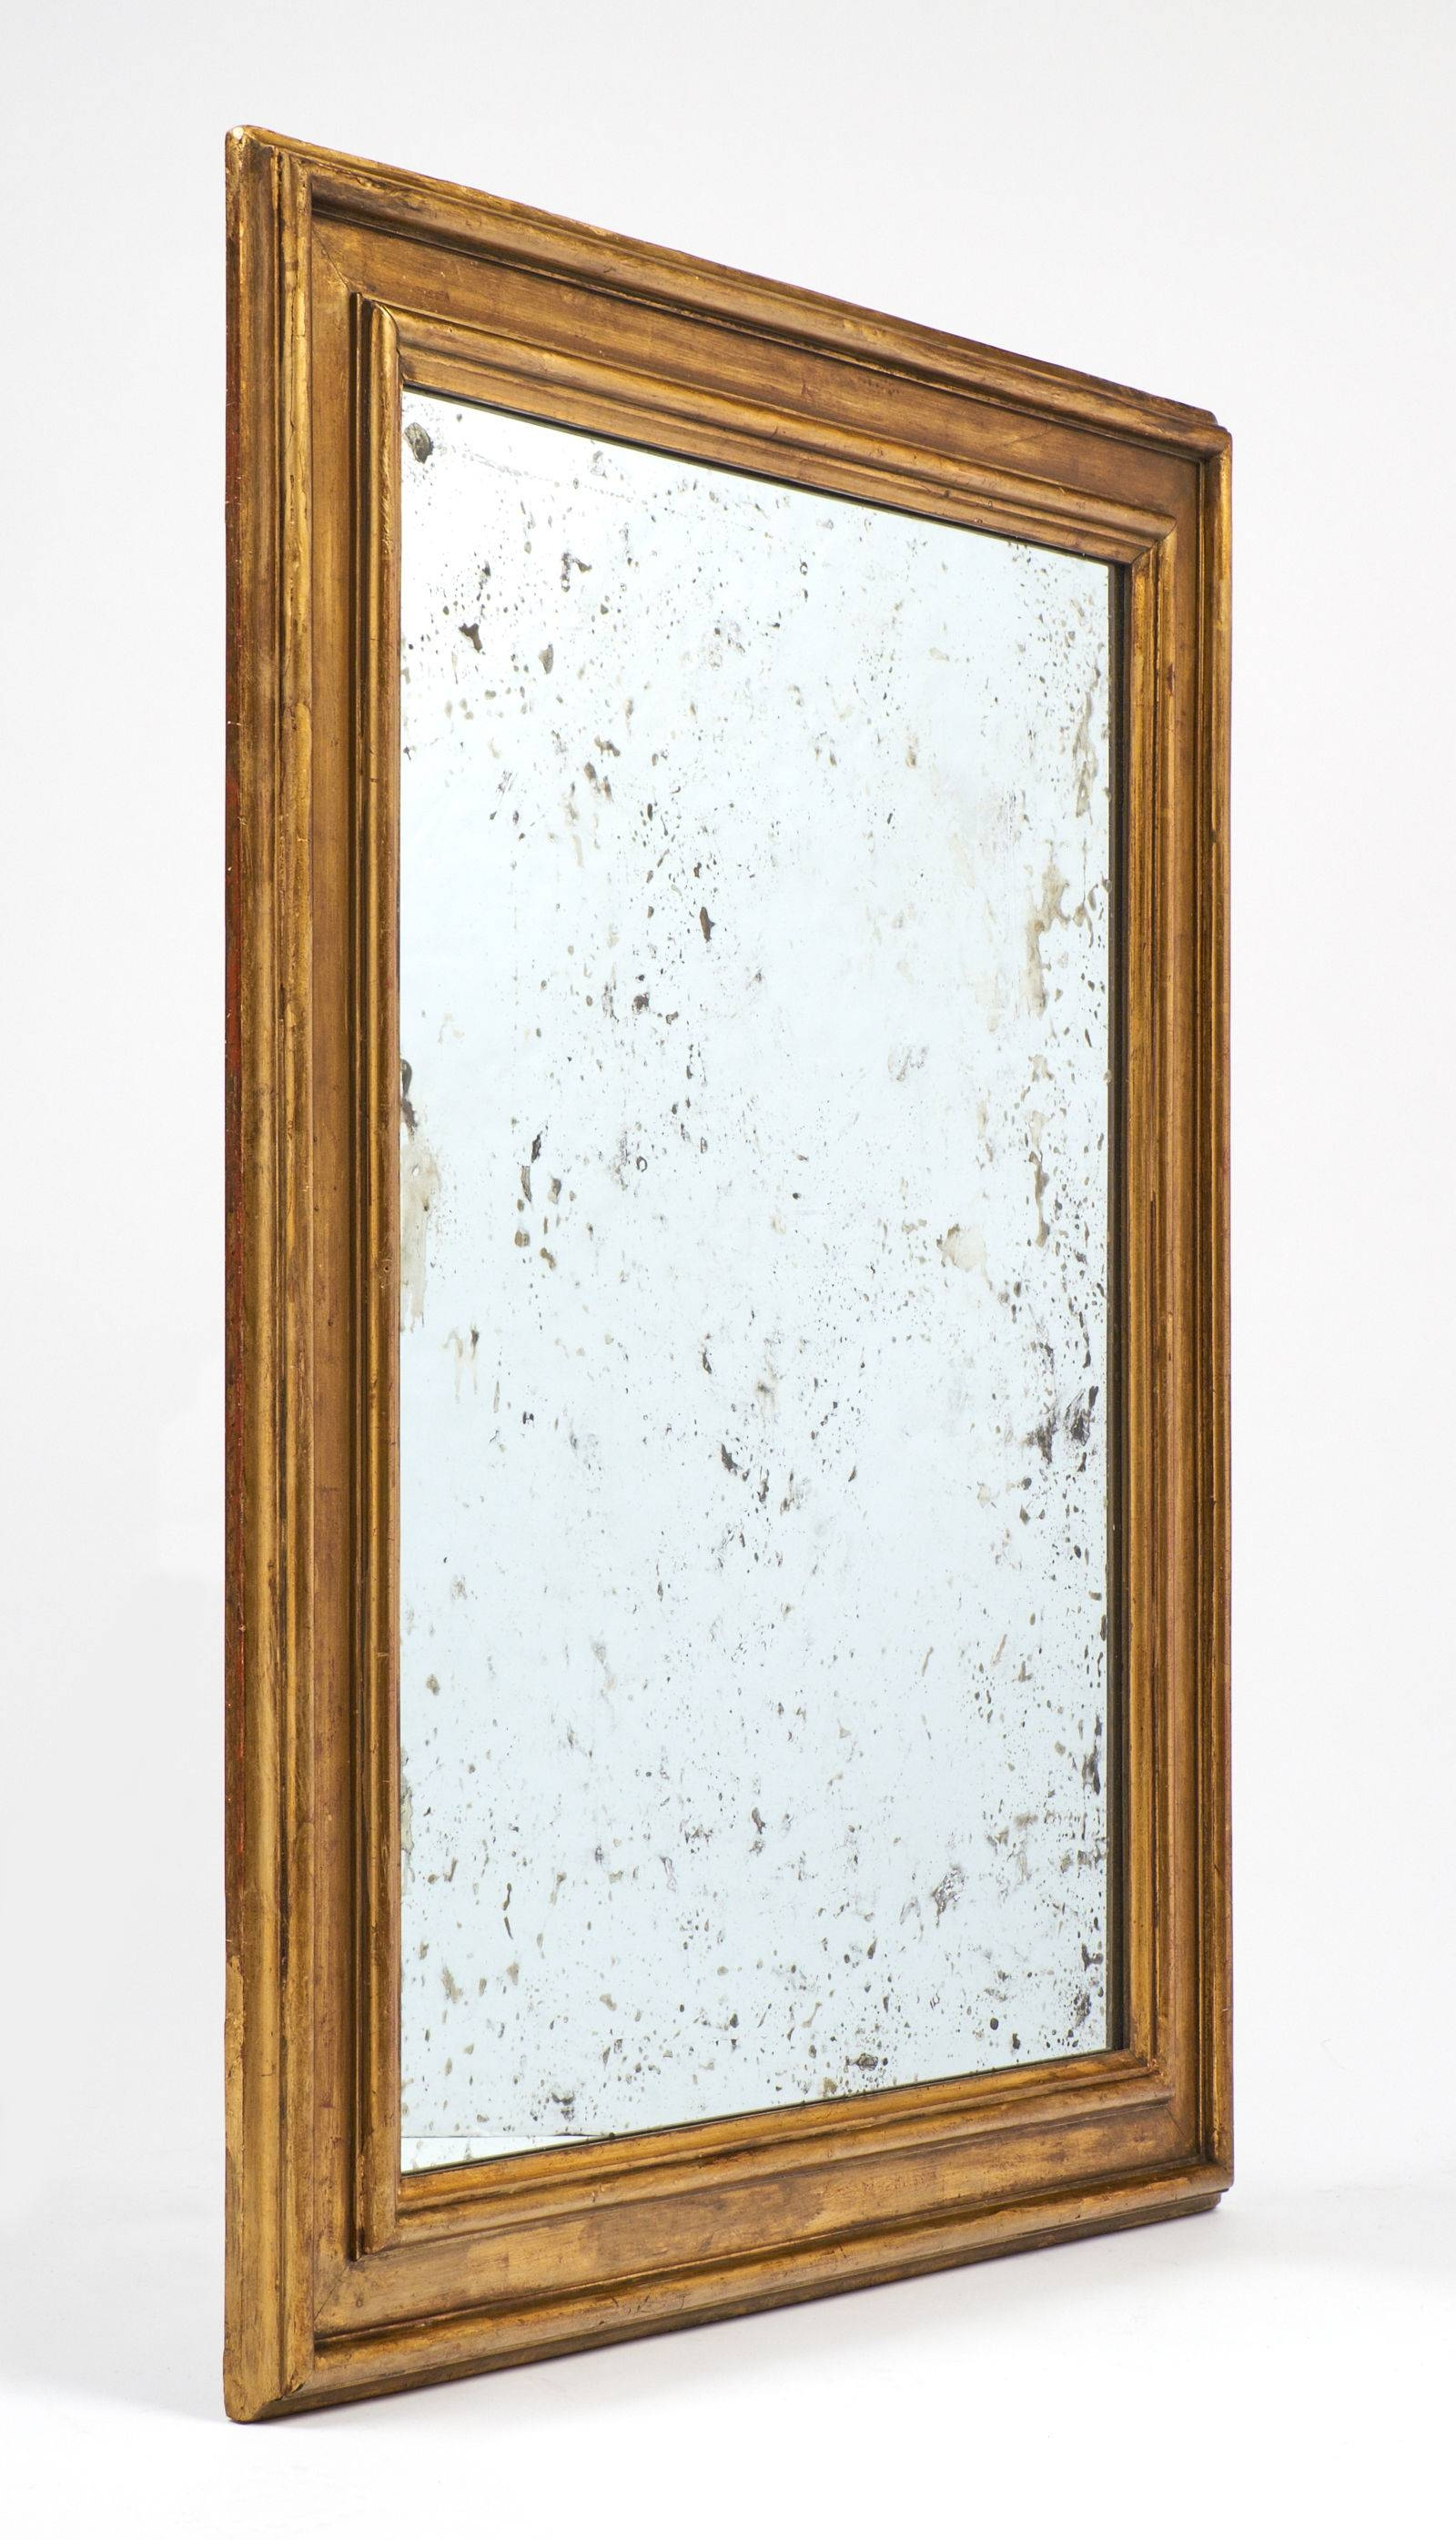 Antique Louis Xvi Style Gold Leaf Mirrors – Jean Marc Fray Pertaining To Antique Gold Mirrors (View 2 of 25)